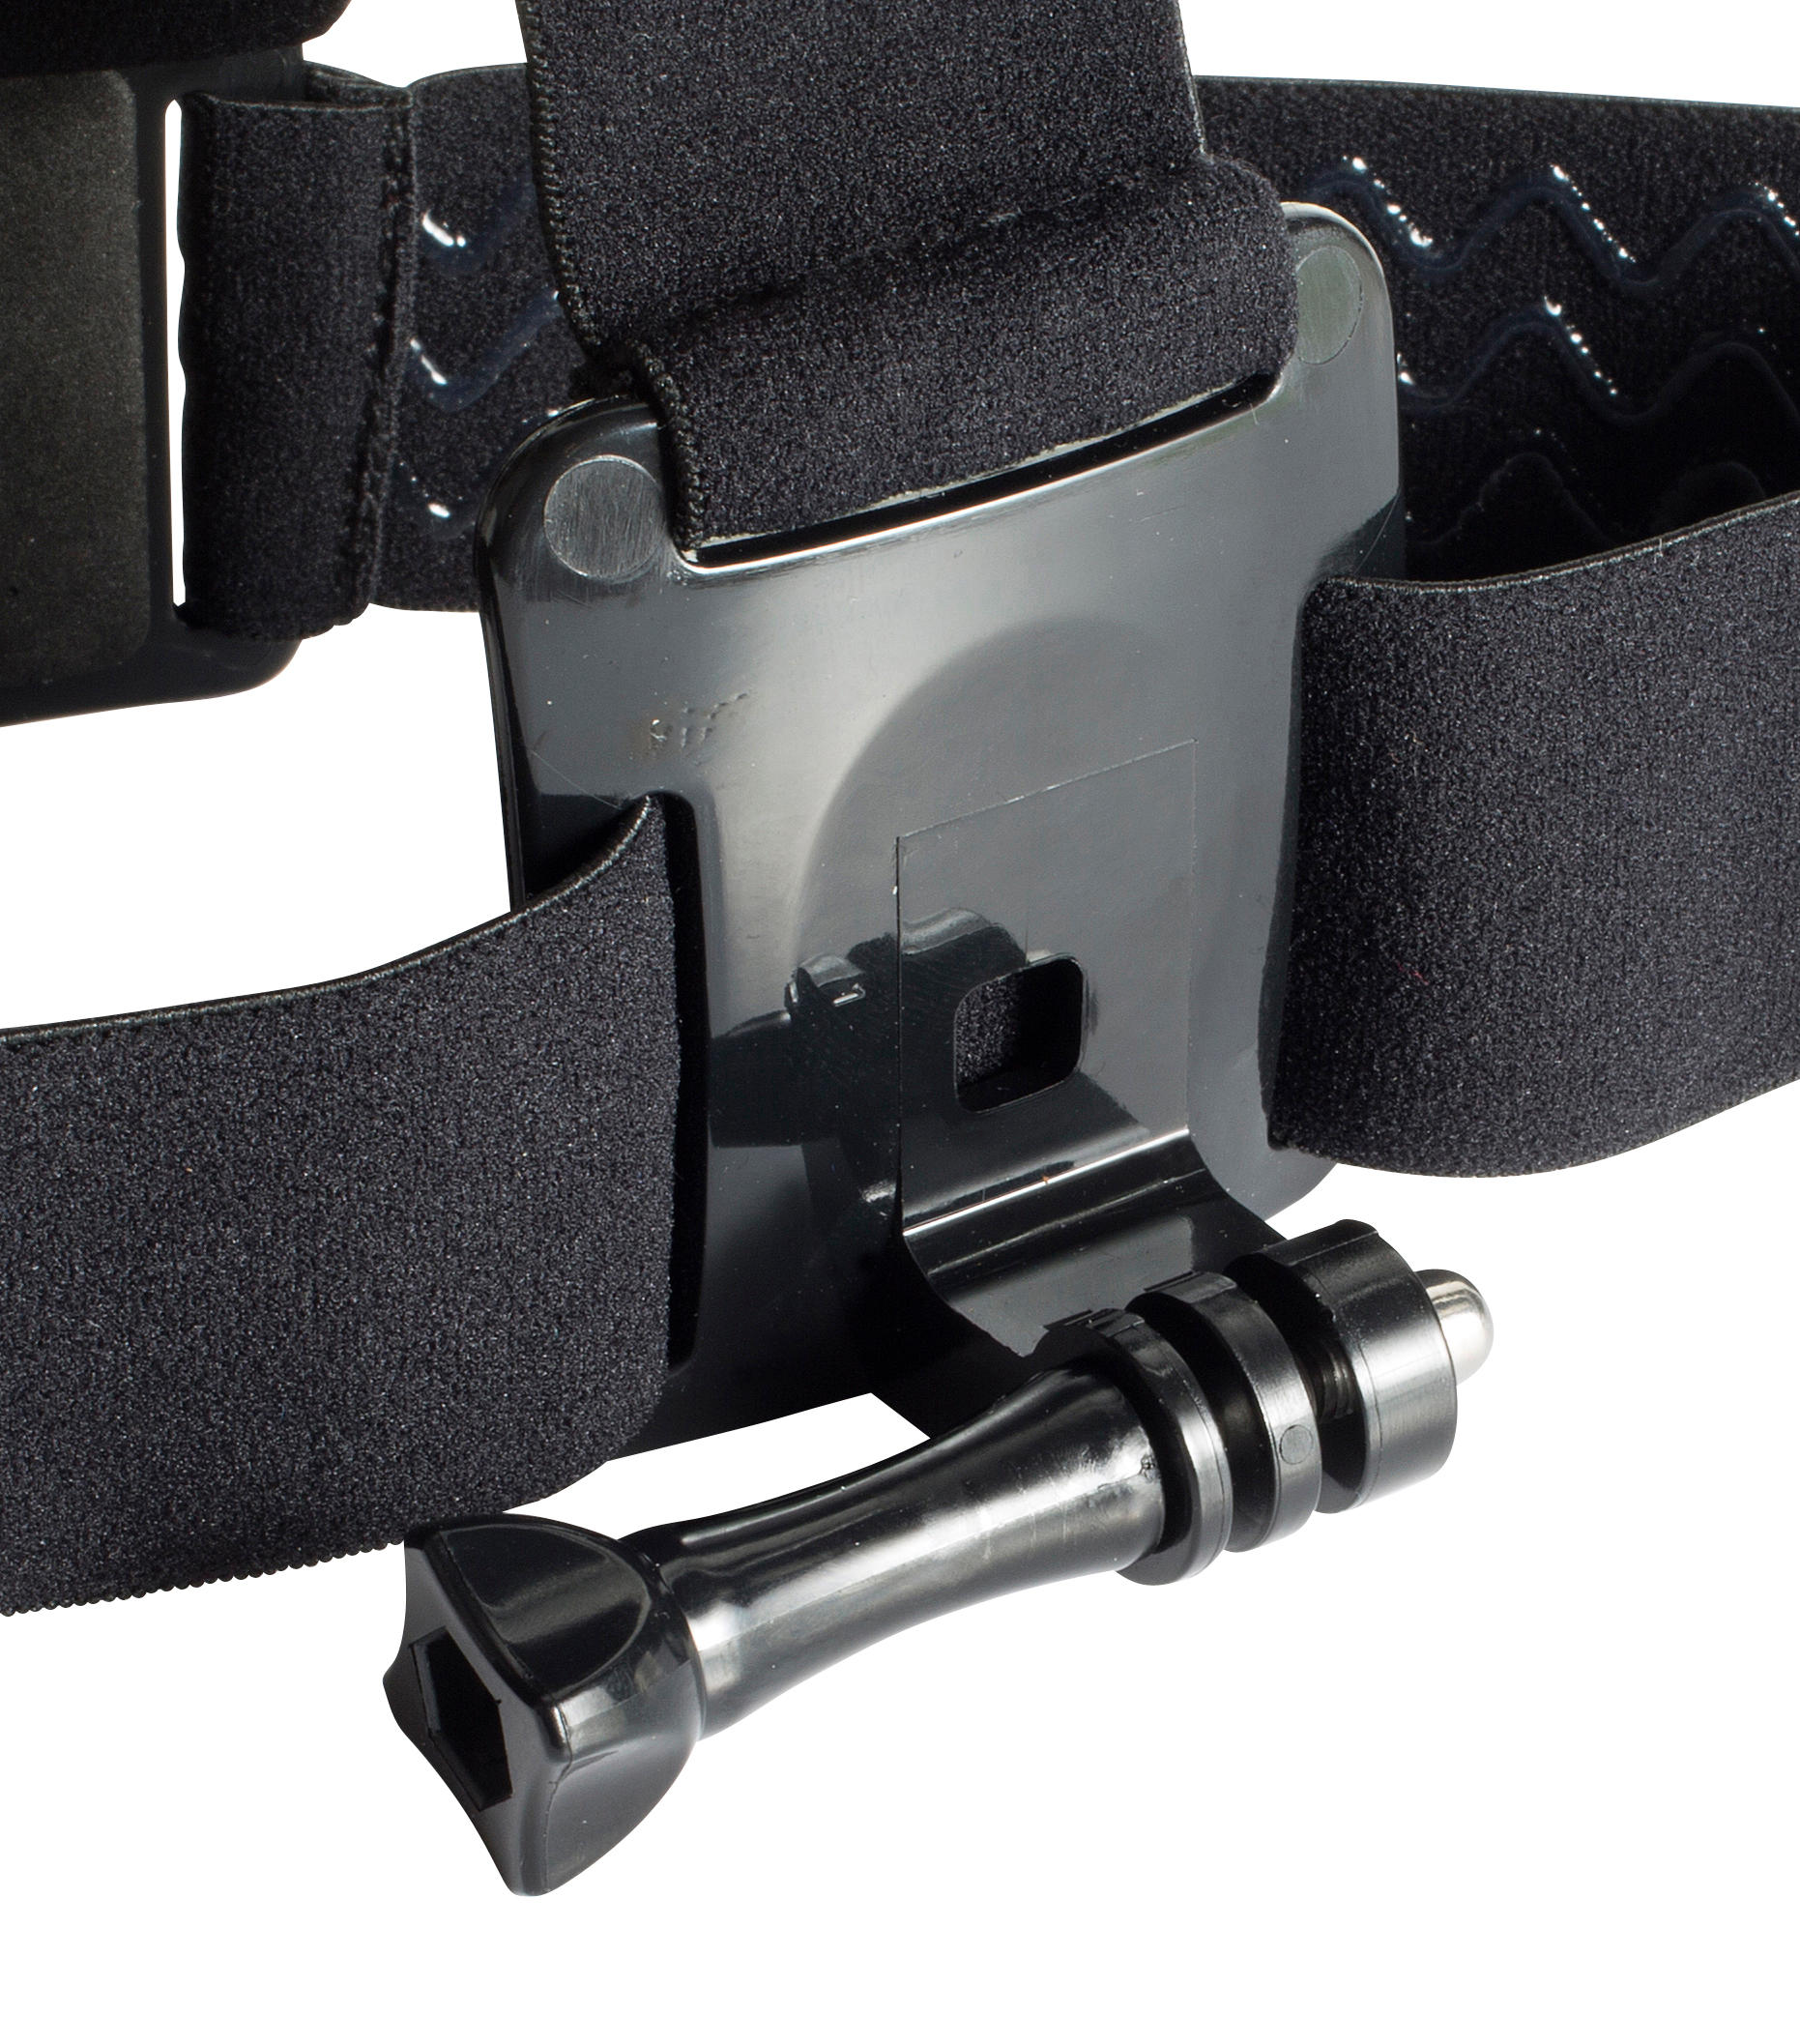 CO-NECT Forehead Mount for Sports Cameras.